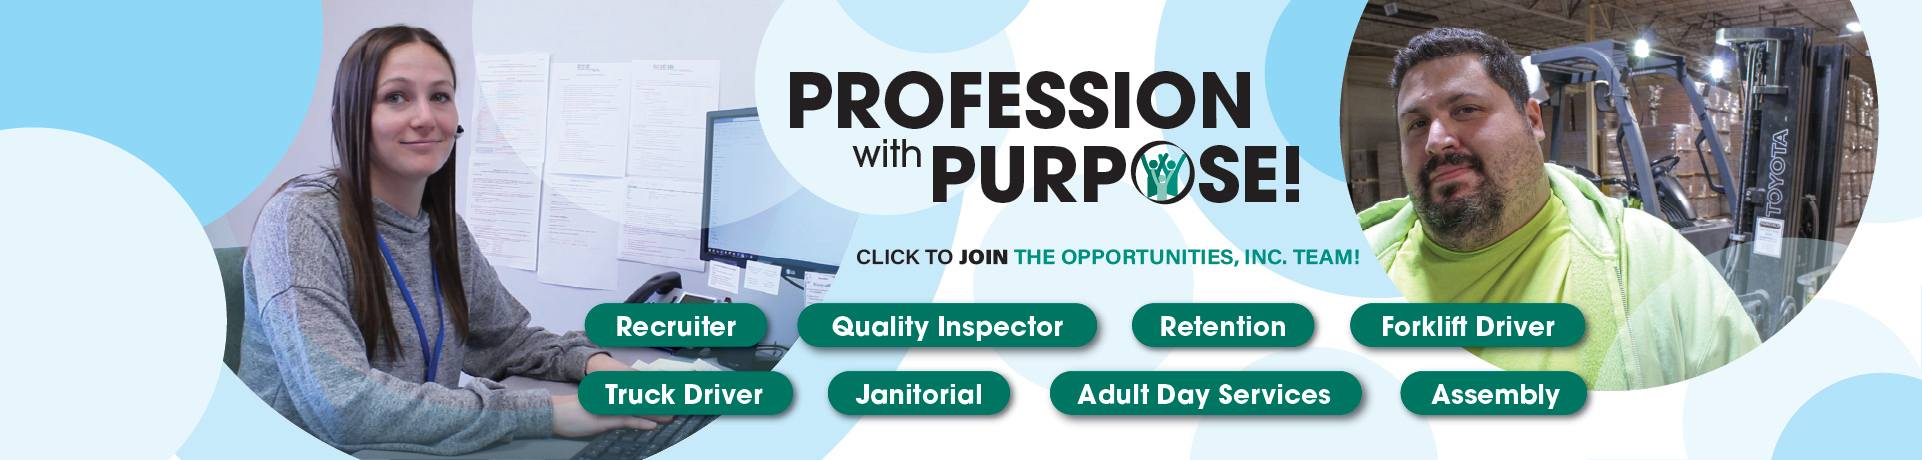 A_Profession_Frontpage_Banner_5-21